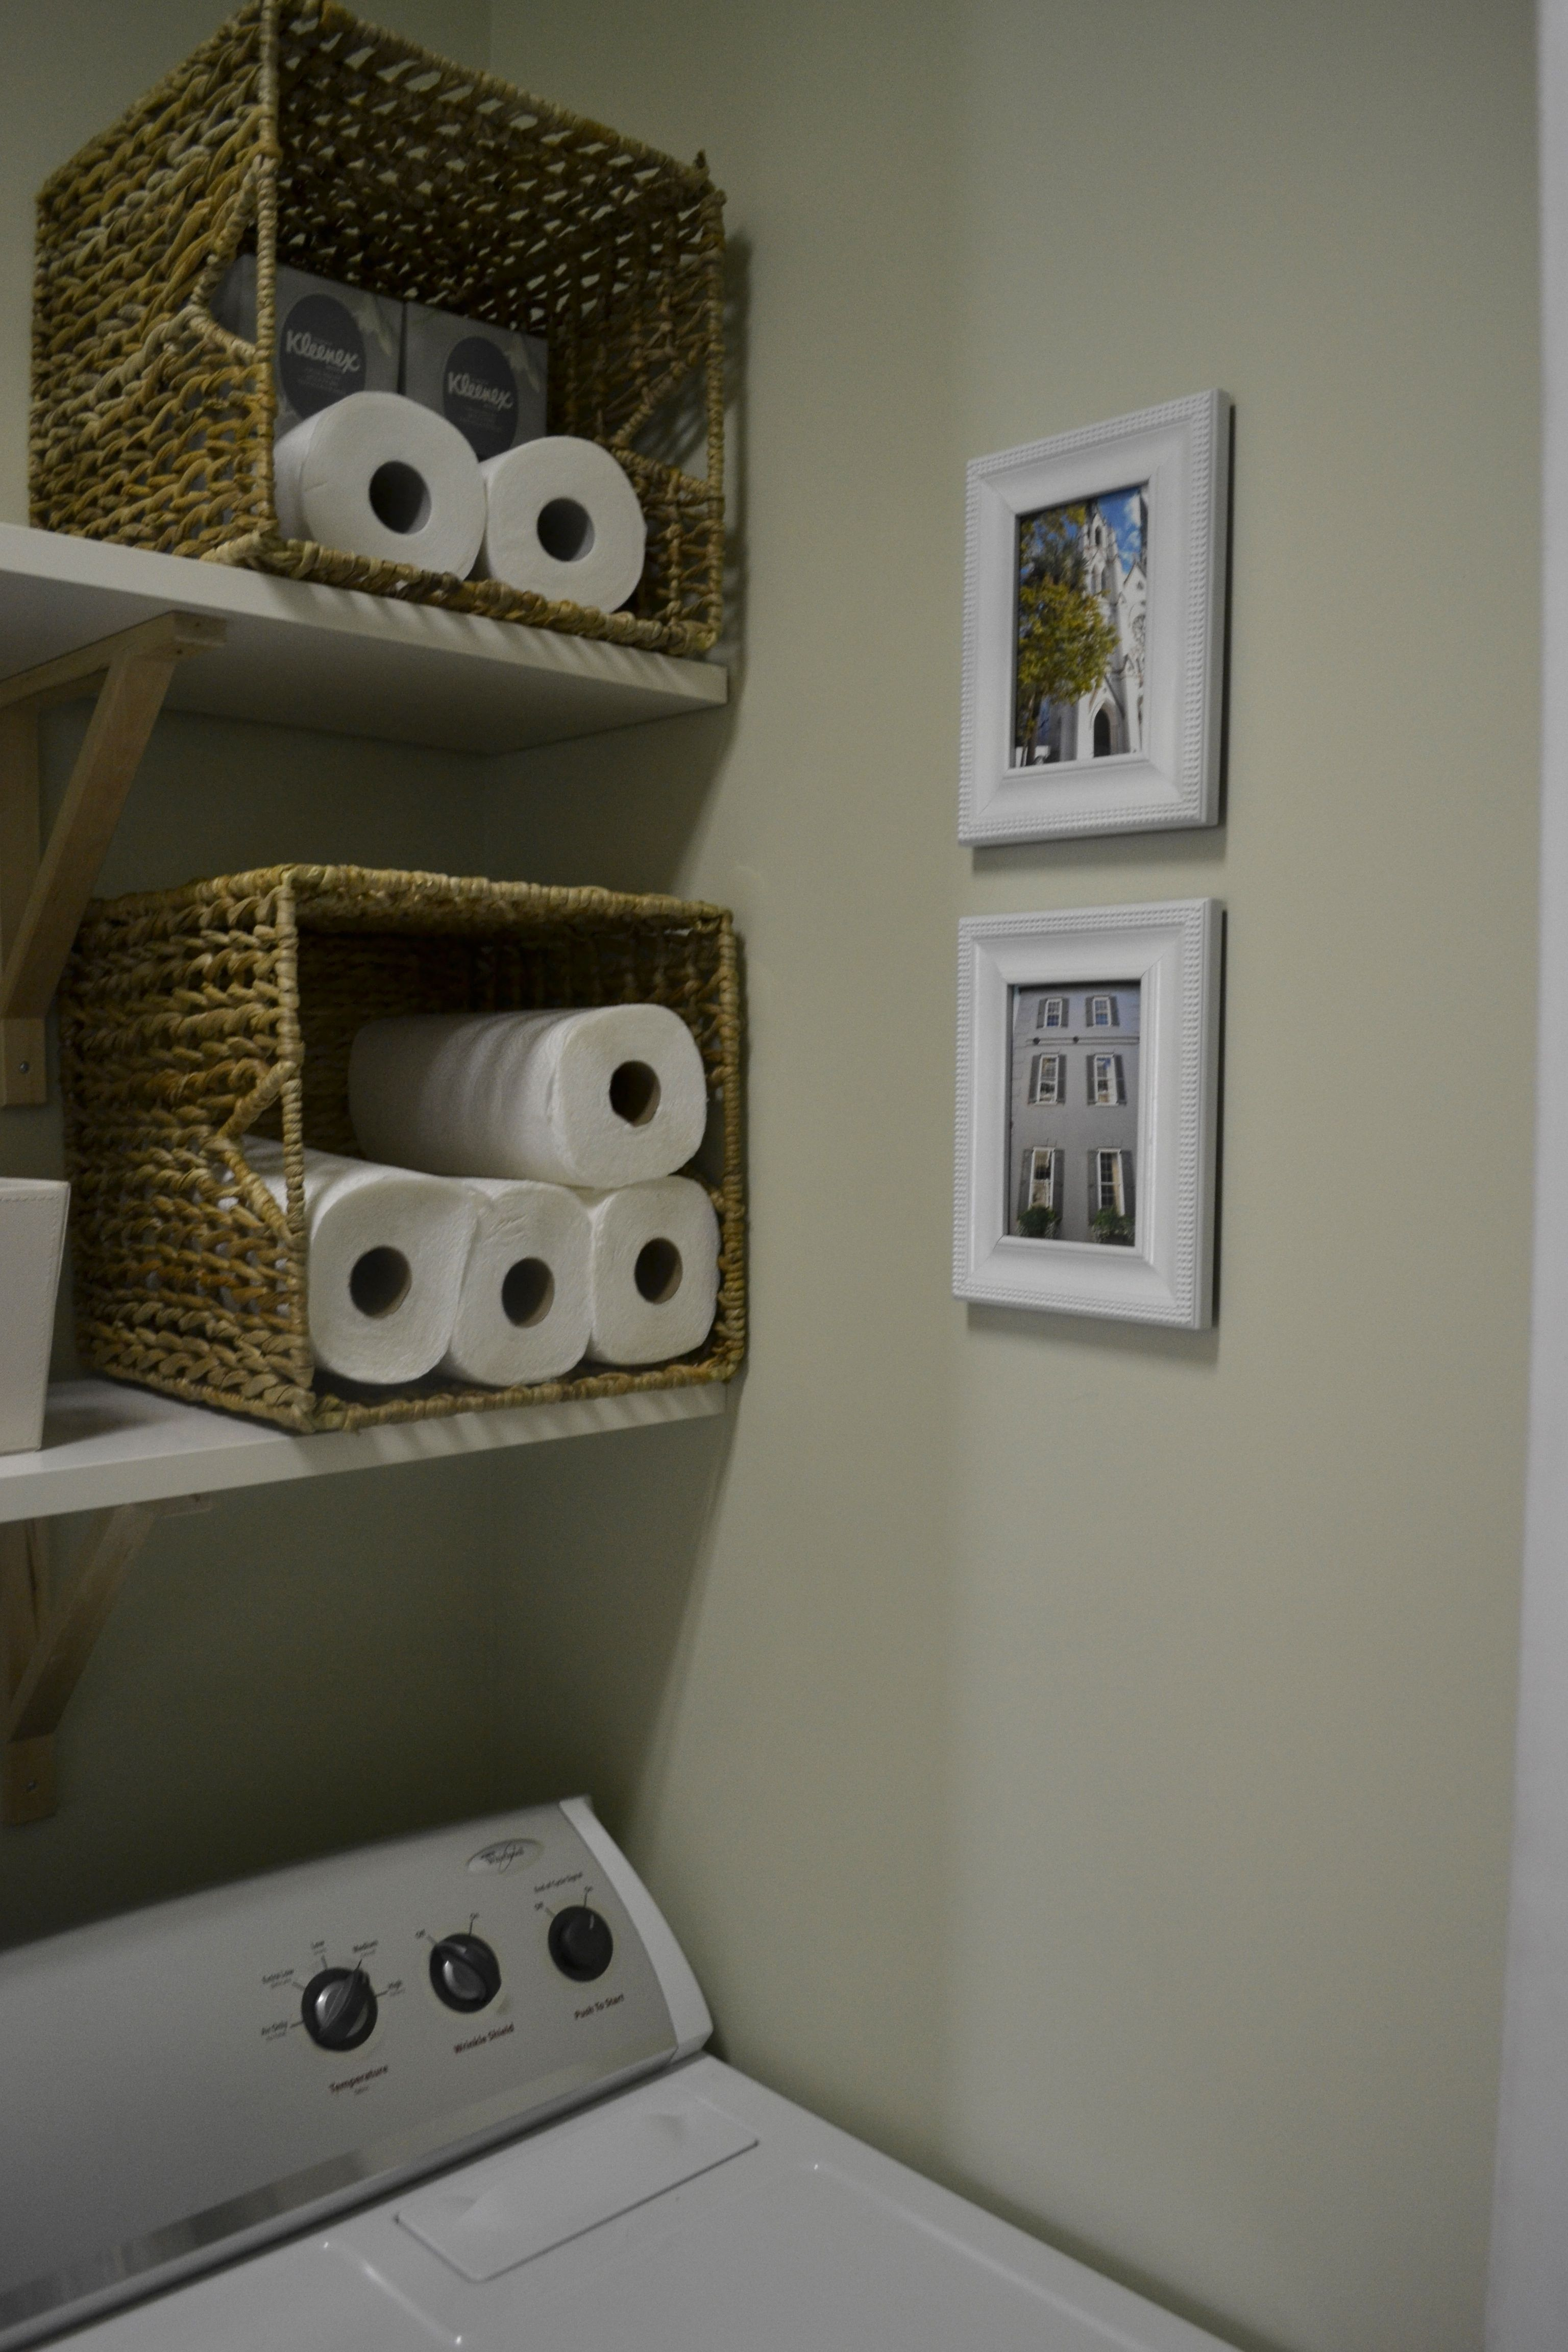 Paper Towel Toilet Paper Pretty Storage Organizing Pinterest - Towel storage bins for small bathroom ideas